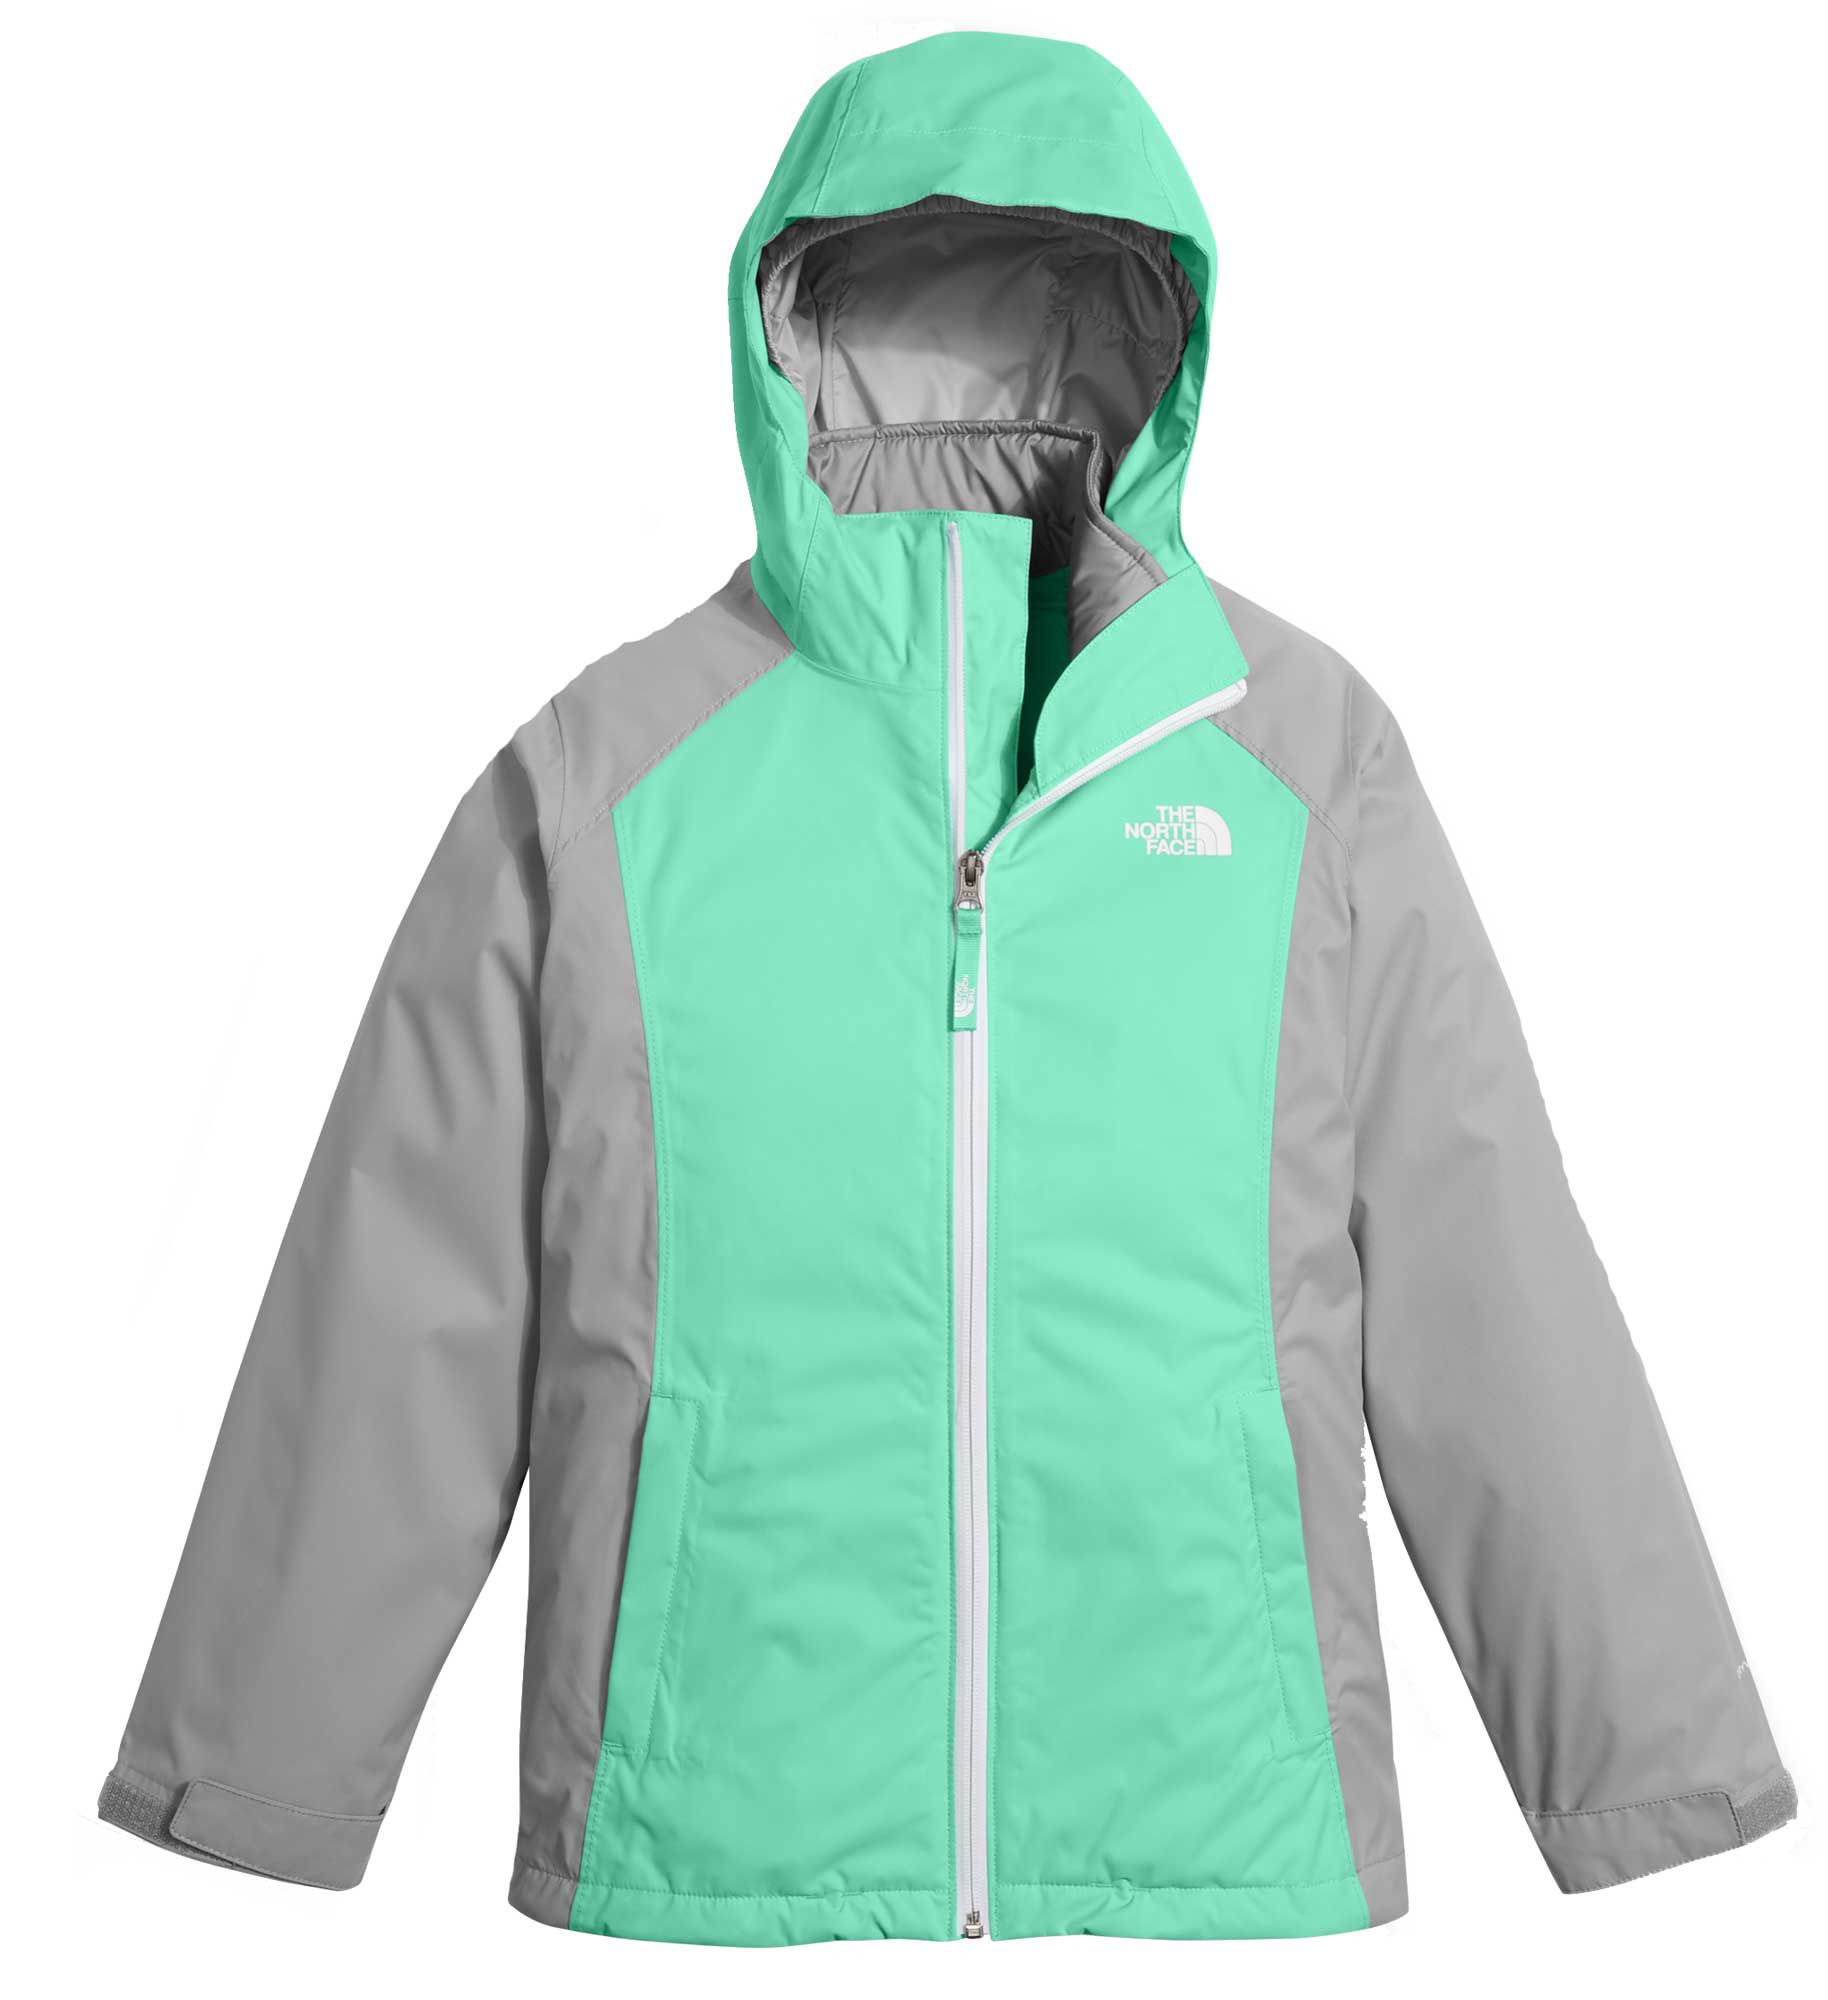 3-in-1 girls winter ski coat. Glacier fleece liner; with advanced weather protection that's removable and anti-pipping. Two side-pockets that are lined with fleece to keep hands warm.